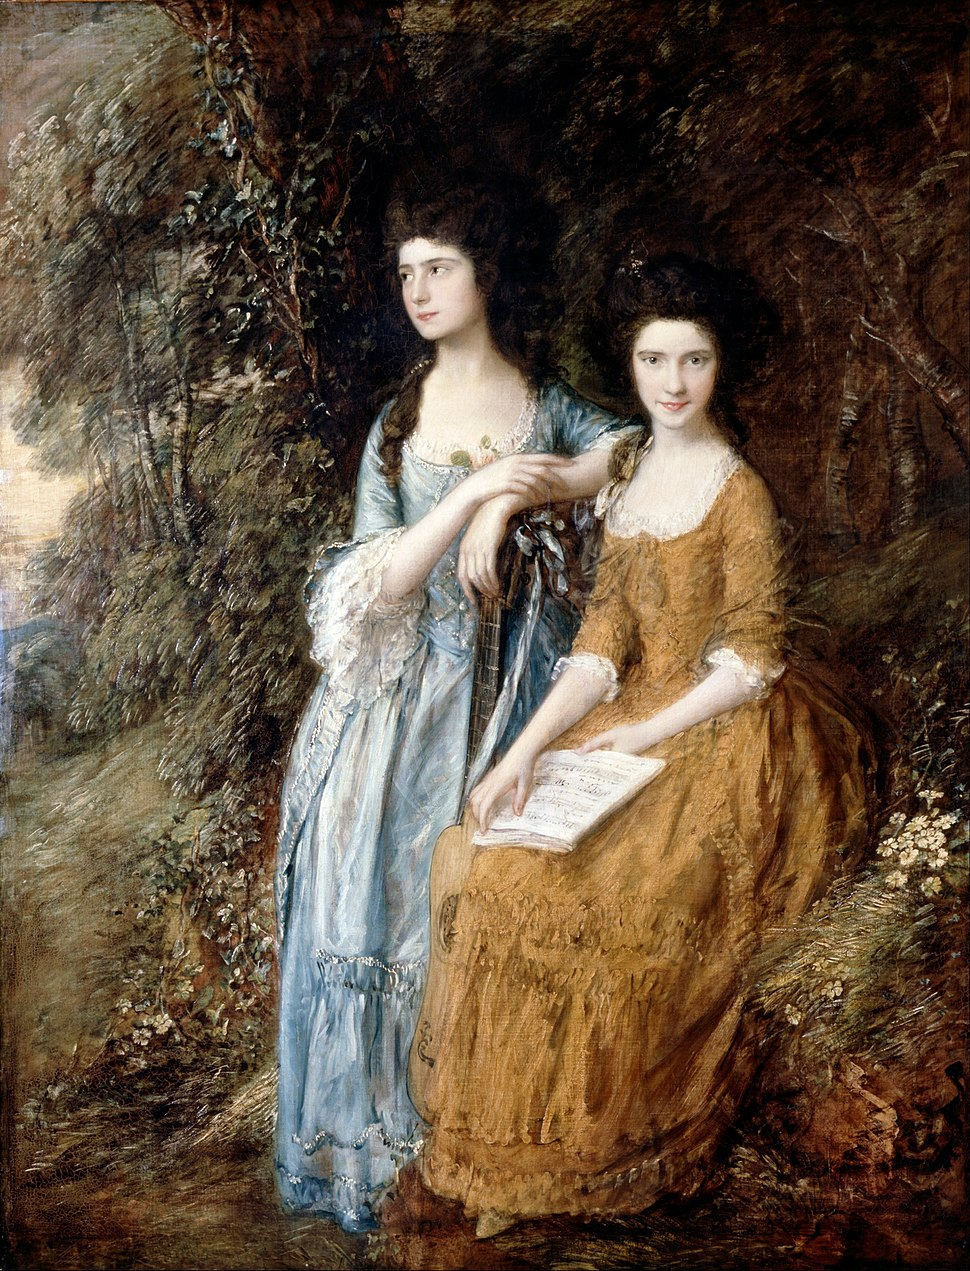 Gainsborough, Thomas - Elizabeth and Mary Linley - Google Art Project